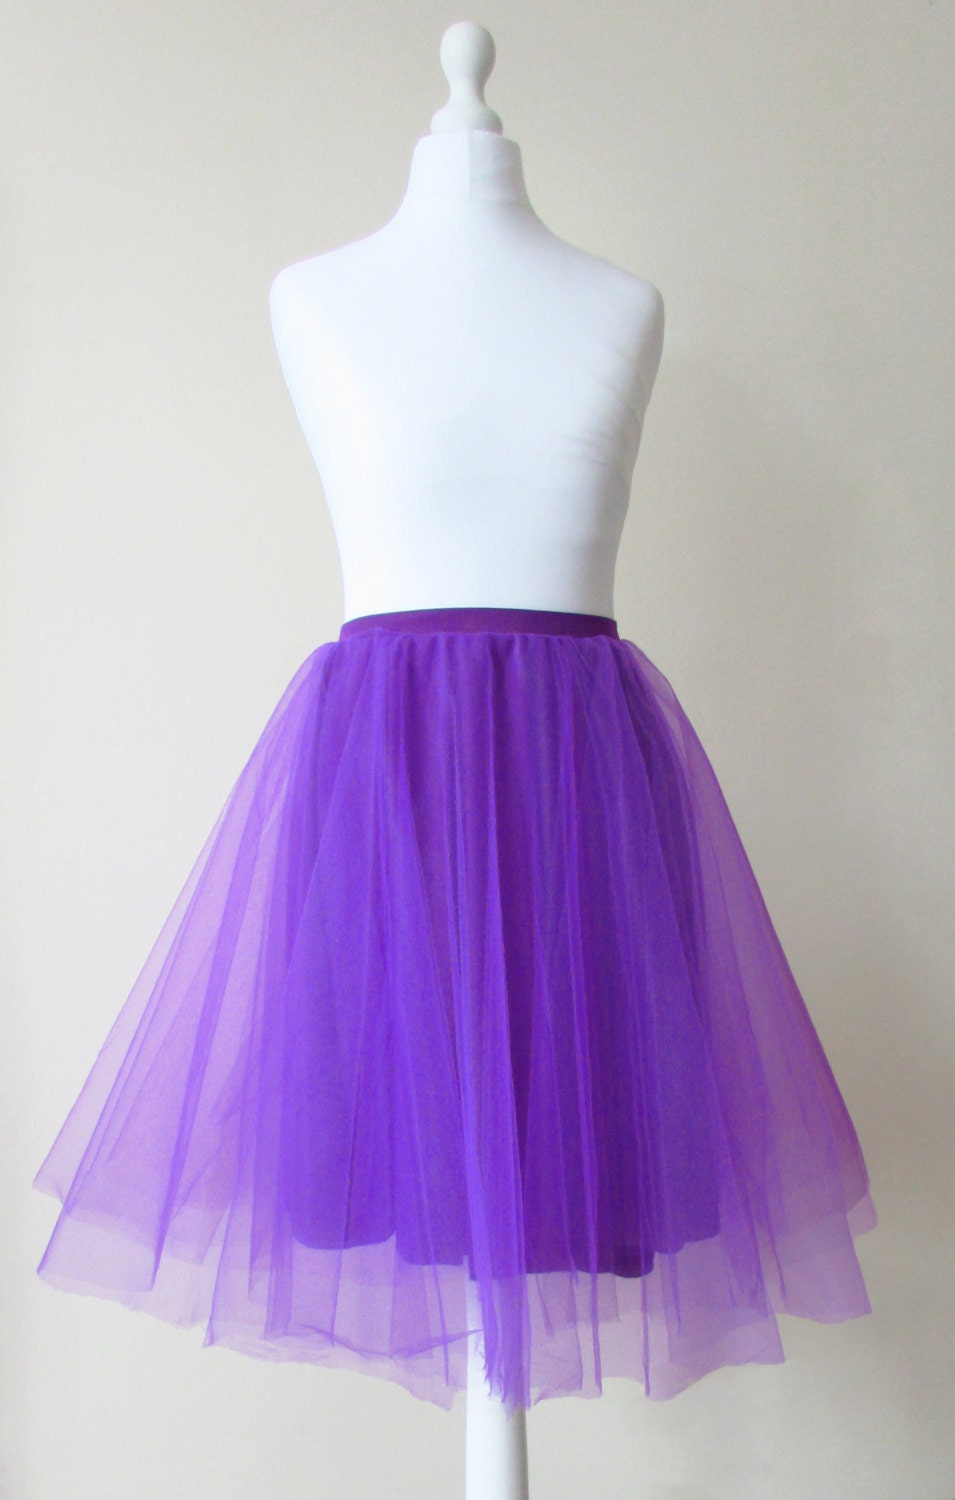 Find great deals on eBay for purple circle skirt. Shop with confidence.